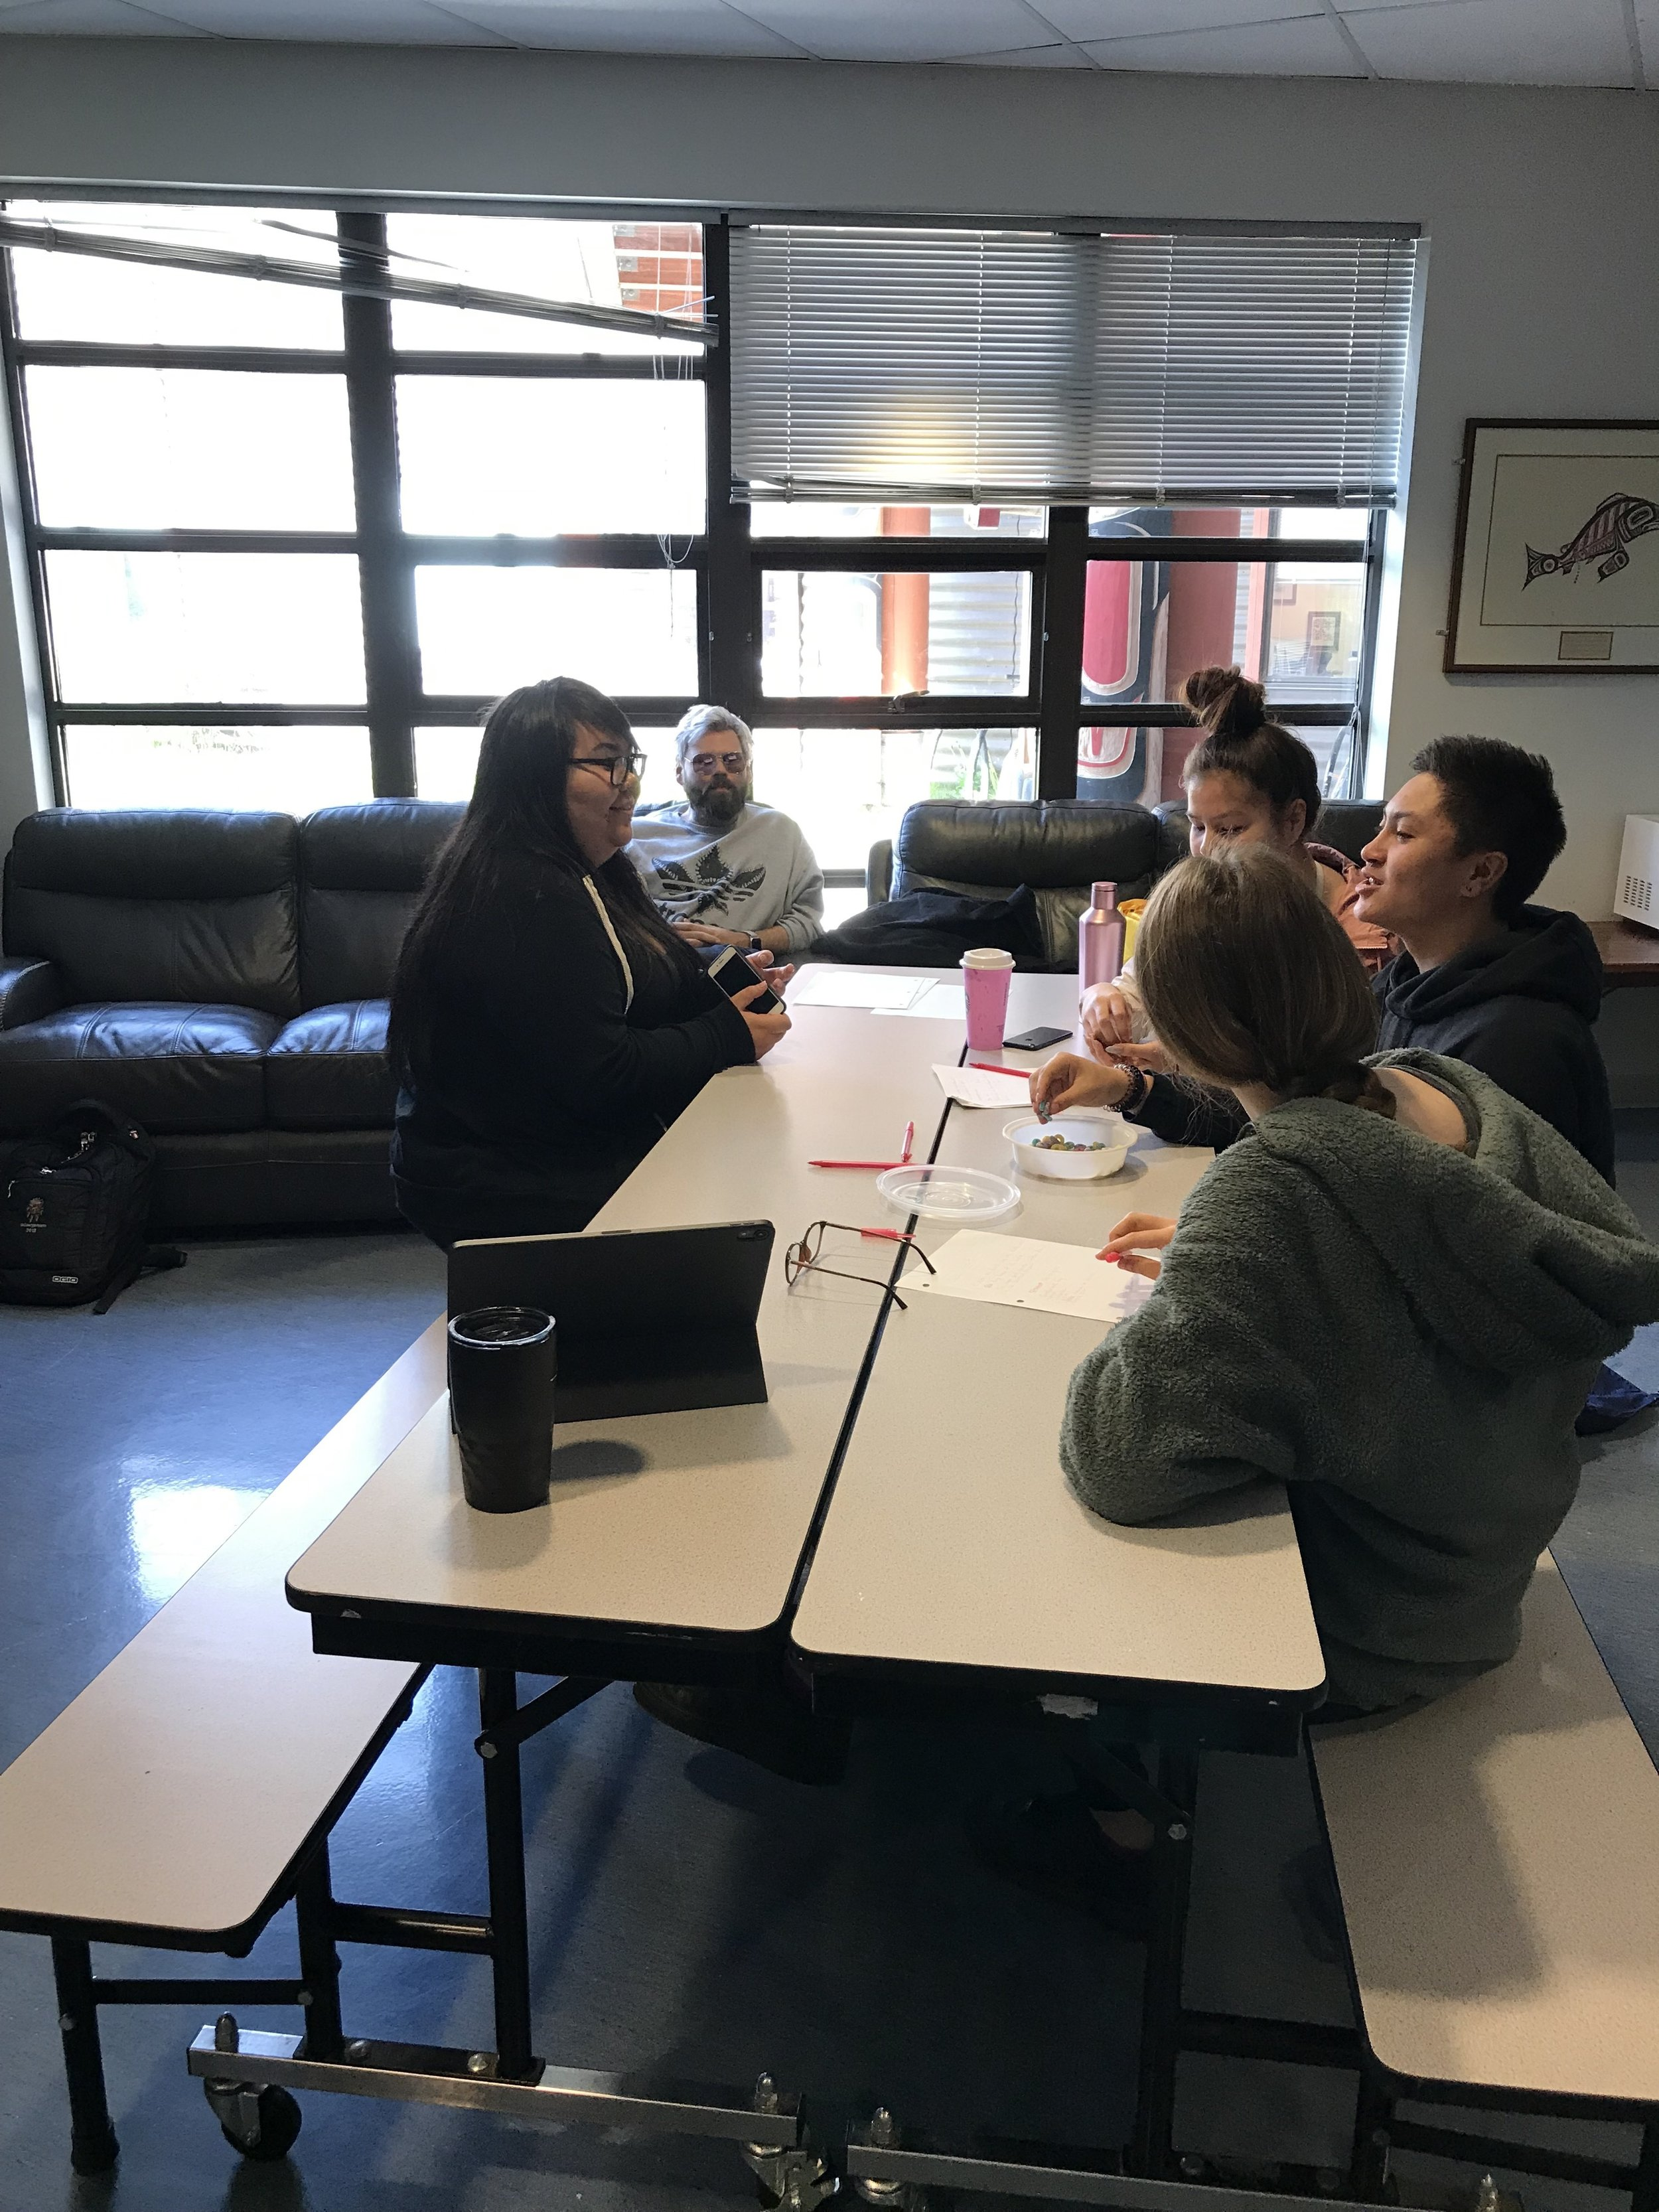 Niccola and Patrick work with Camelia, Gavin and Maggie as they brainstorm a mockumentary idea about tourists who visit Haida Gwaii